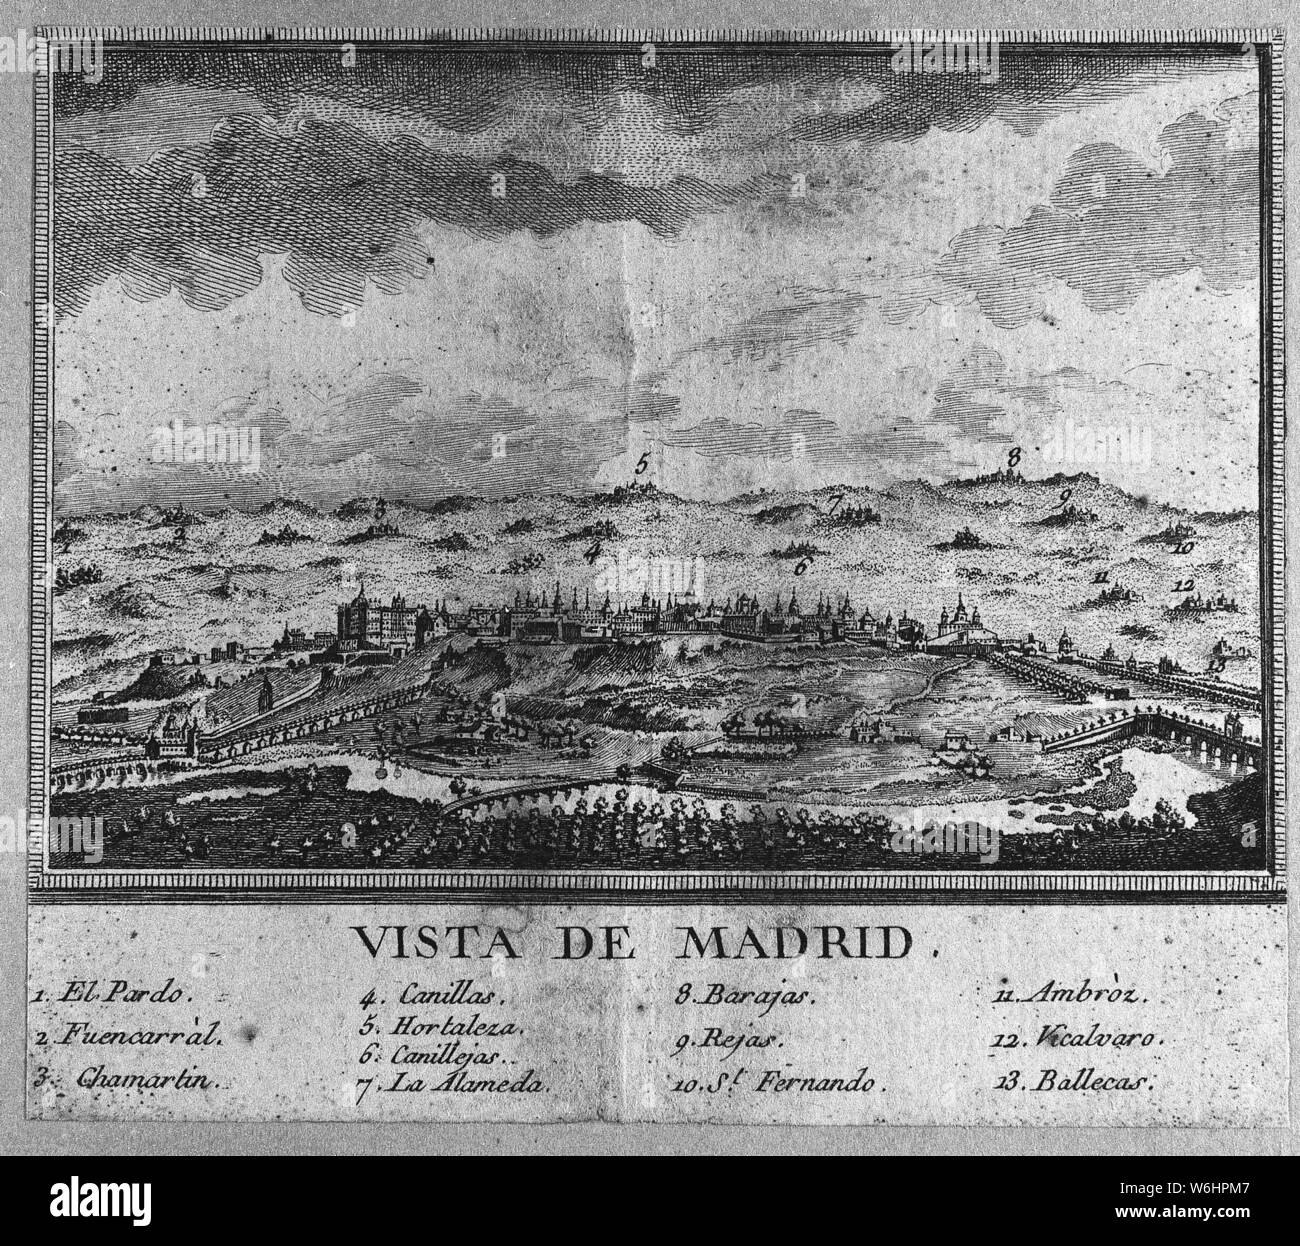 VISTA GENERAL DE MADRID - SIGLO XVII - GRABADO. Location: MUSEO DE HISTORIA-GRABADOS BLANCO Y NEGRO. SPAIN. Stock Photo